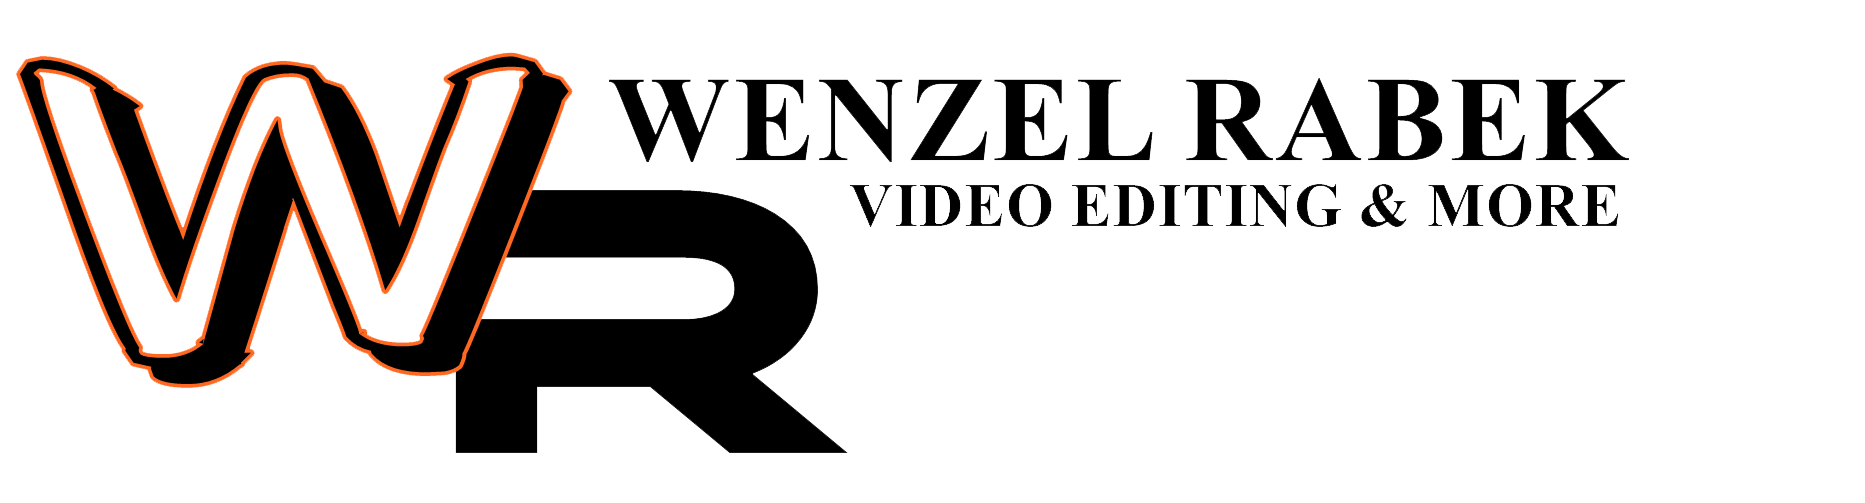 Wenzel Rabek video editing & more